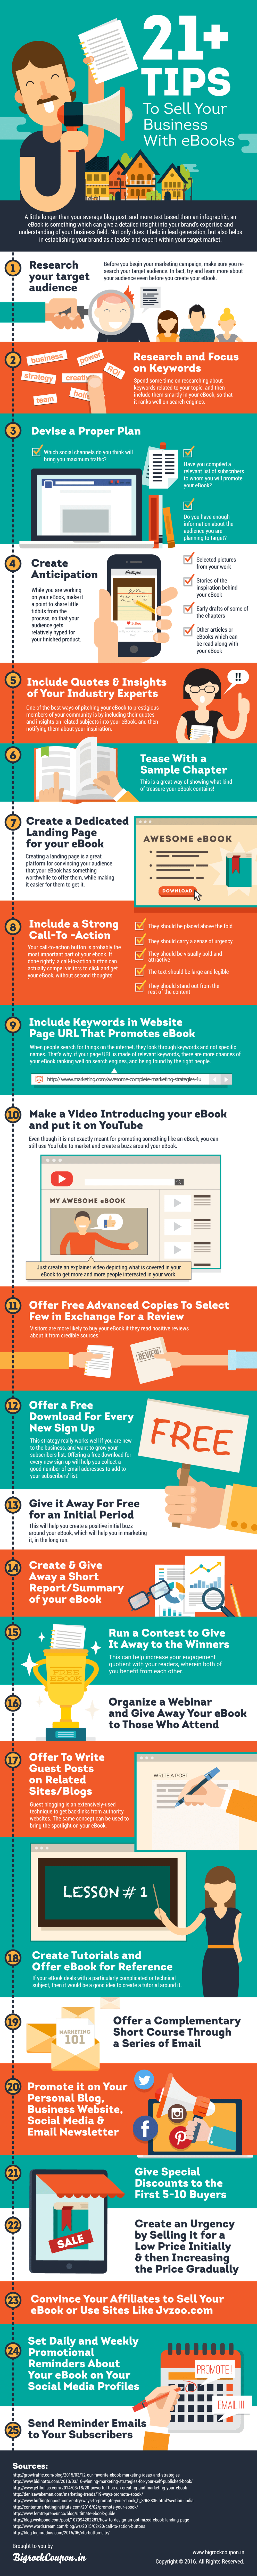 21+ Amazing Tips To Sell Your Business With eBooks #Infographic